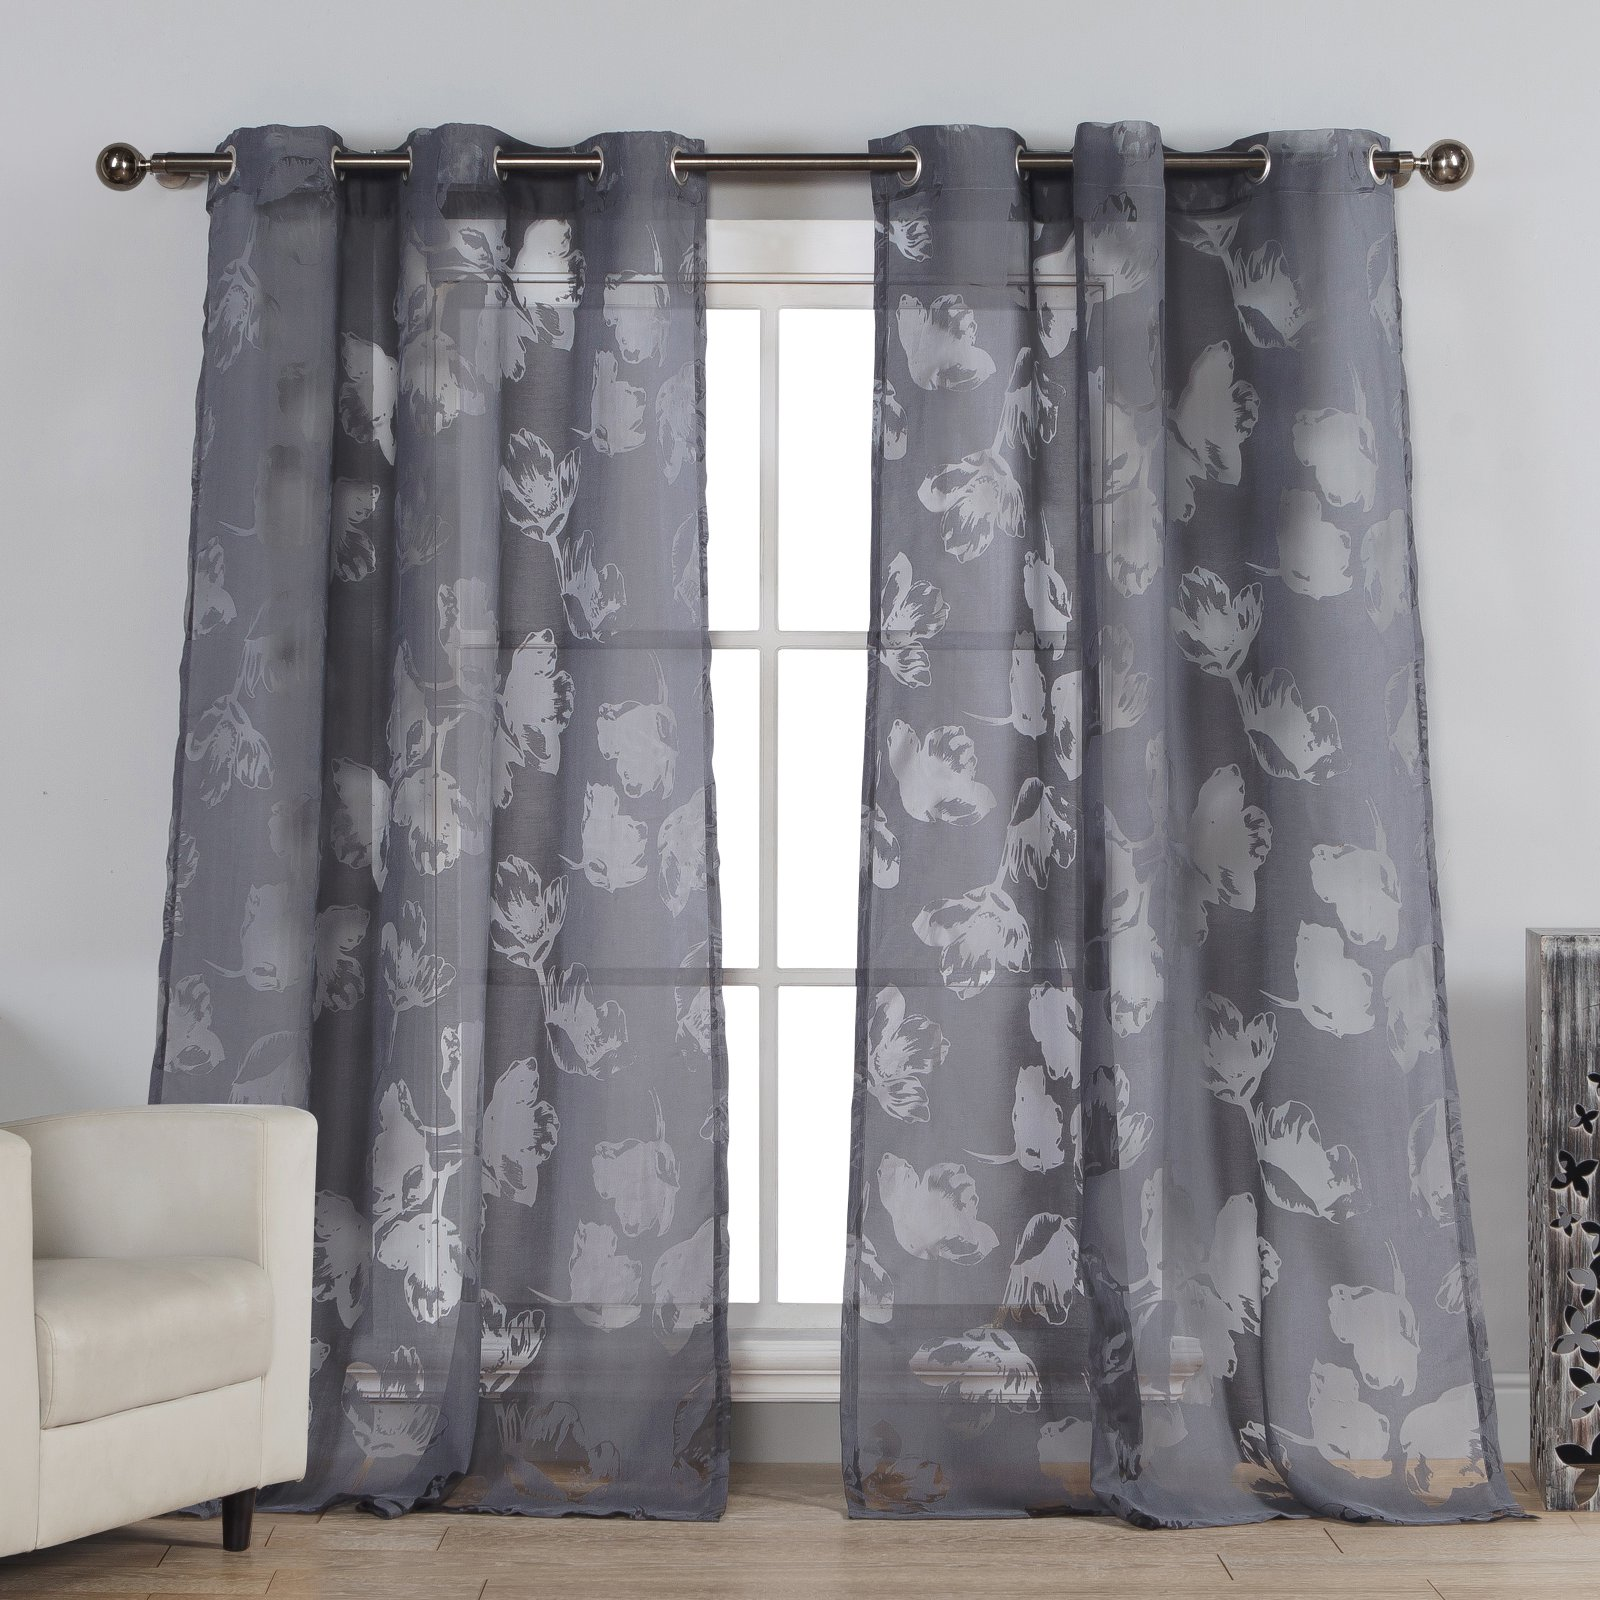 Duck River Aster Grommet Curtain Panel Pair - ASTER 5090